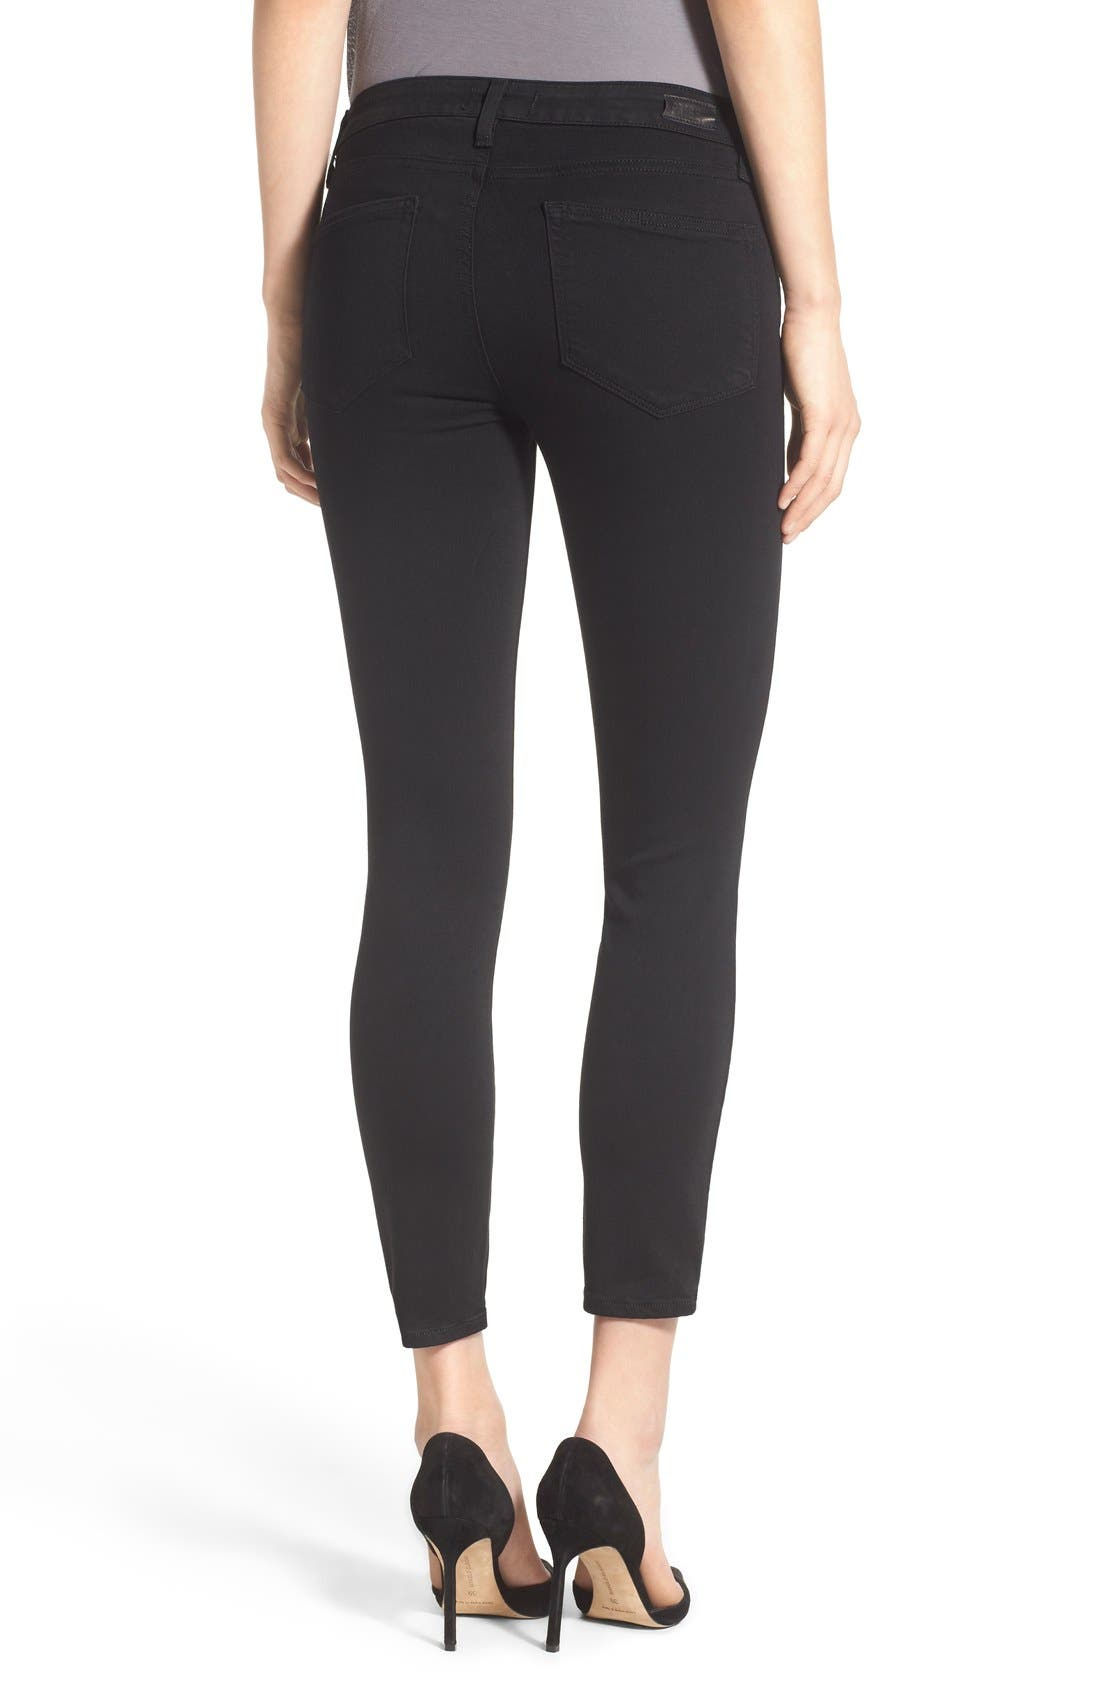 Transcend - Verdugo Crop Skinny Jeans,                             Alternate thumbnail 7, color,                             BLACK